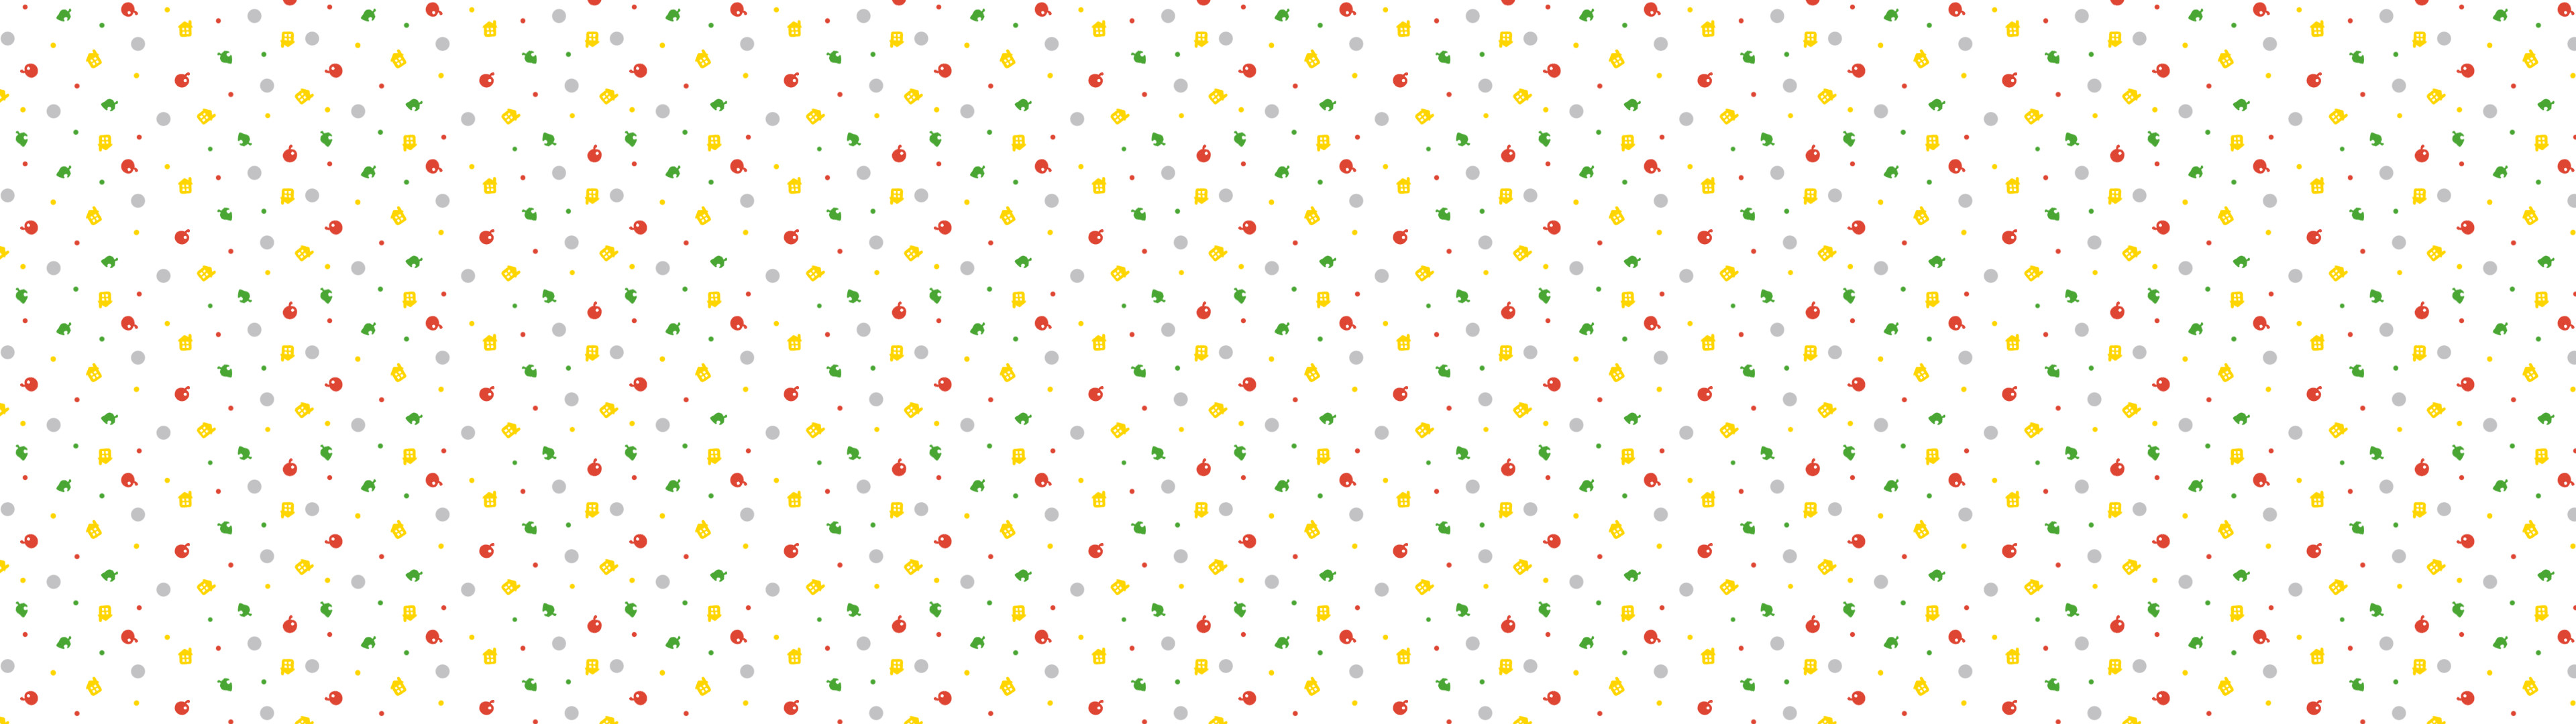 Res: 3840x1080, General  Animal Crossing Animal Crossing New Leaf New Leaf pattern  logo minimalism white colorful dual